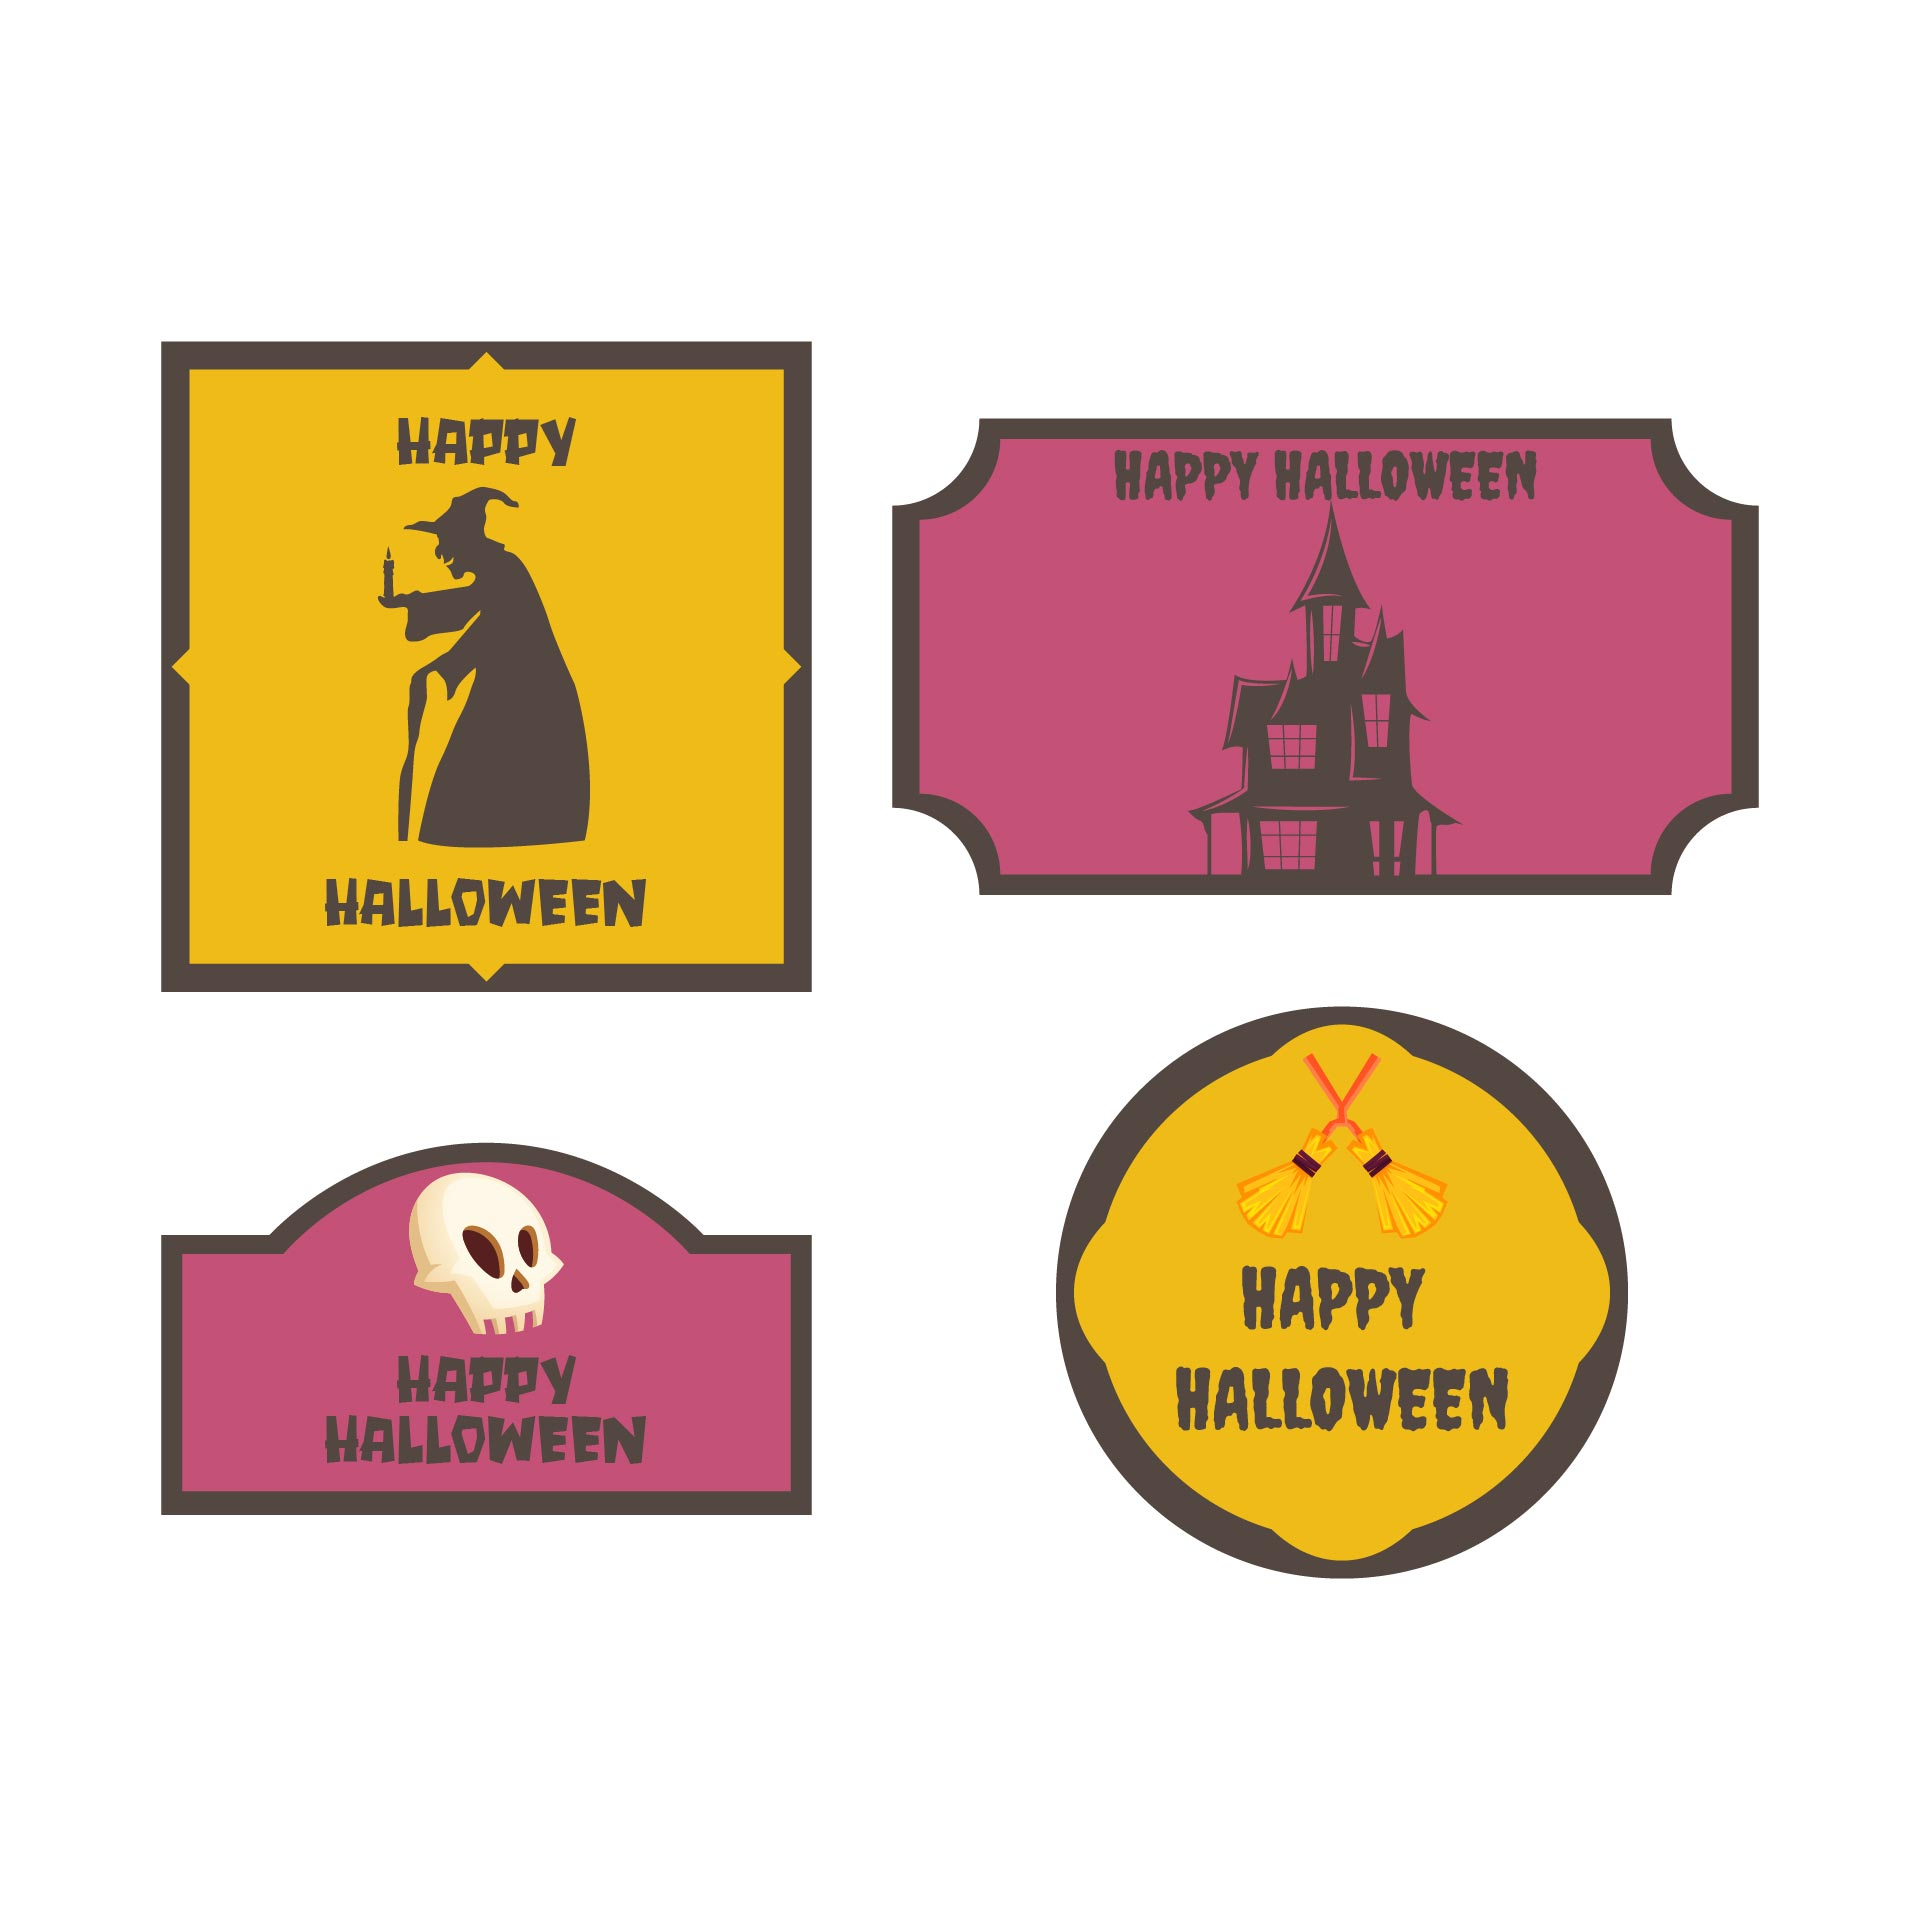 9 Images of Personalized Gift Free Printable Halloween Tags